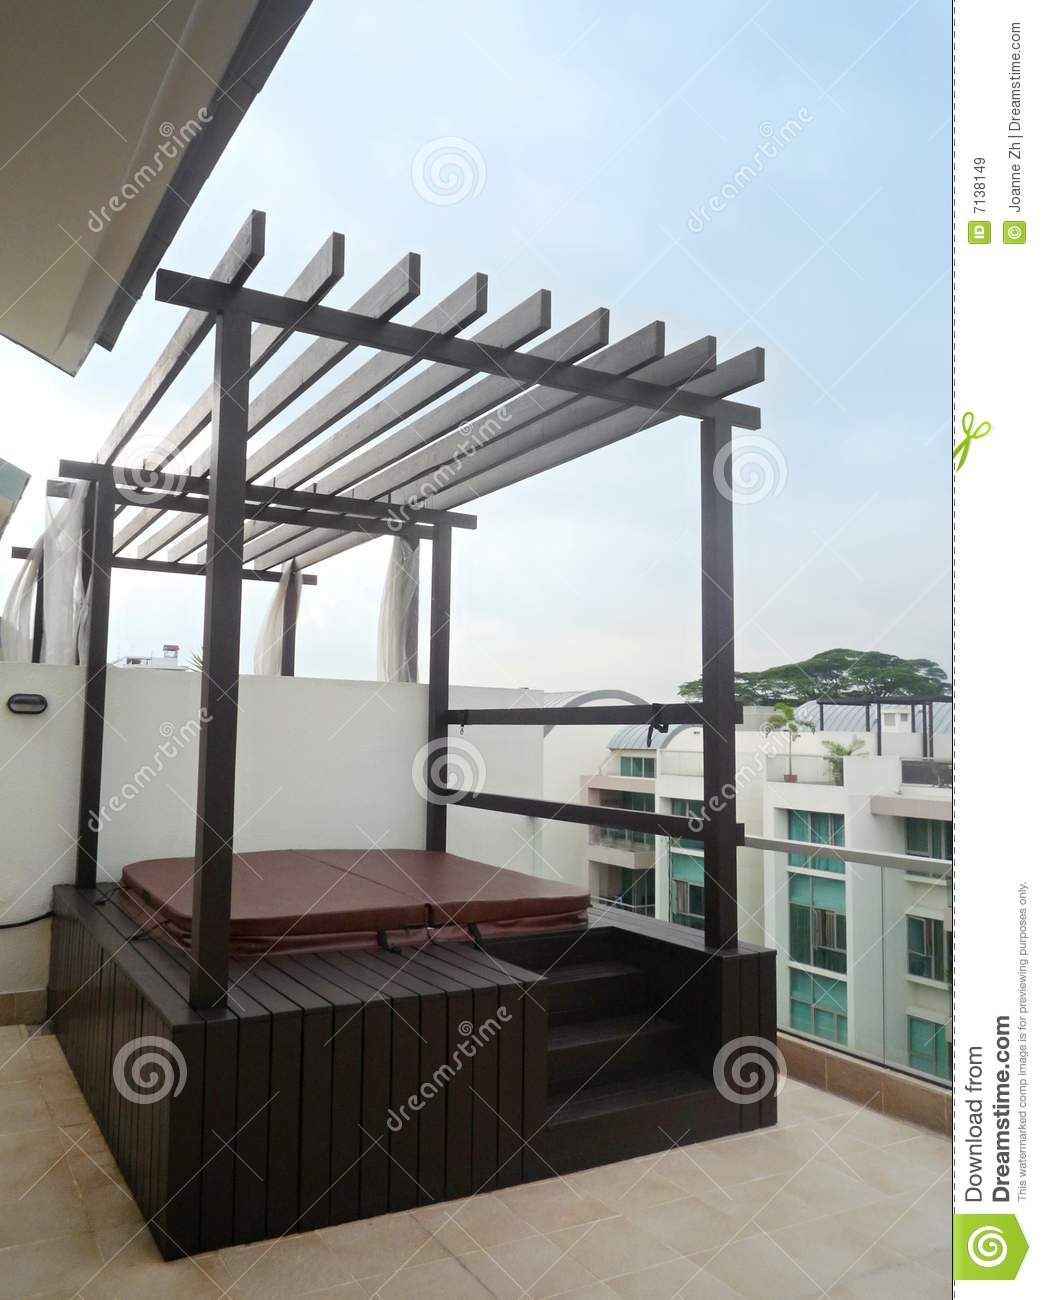 Jacuzzi On Roof Top Stock Image Image Of Building